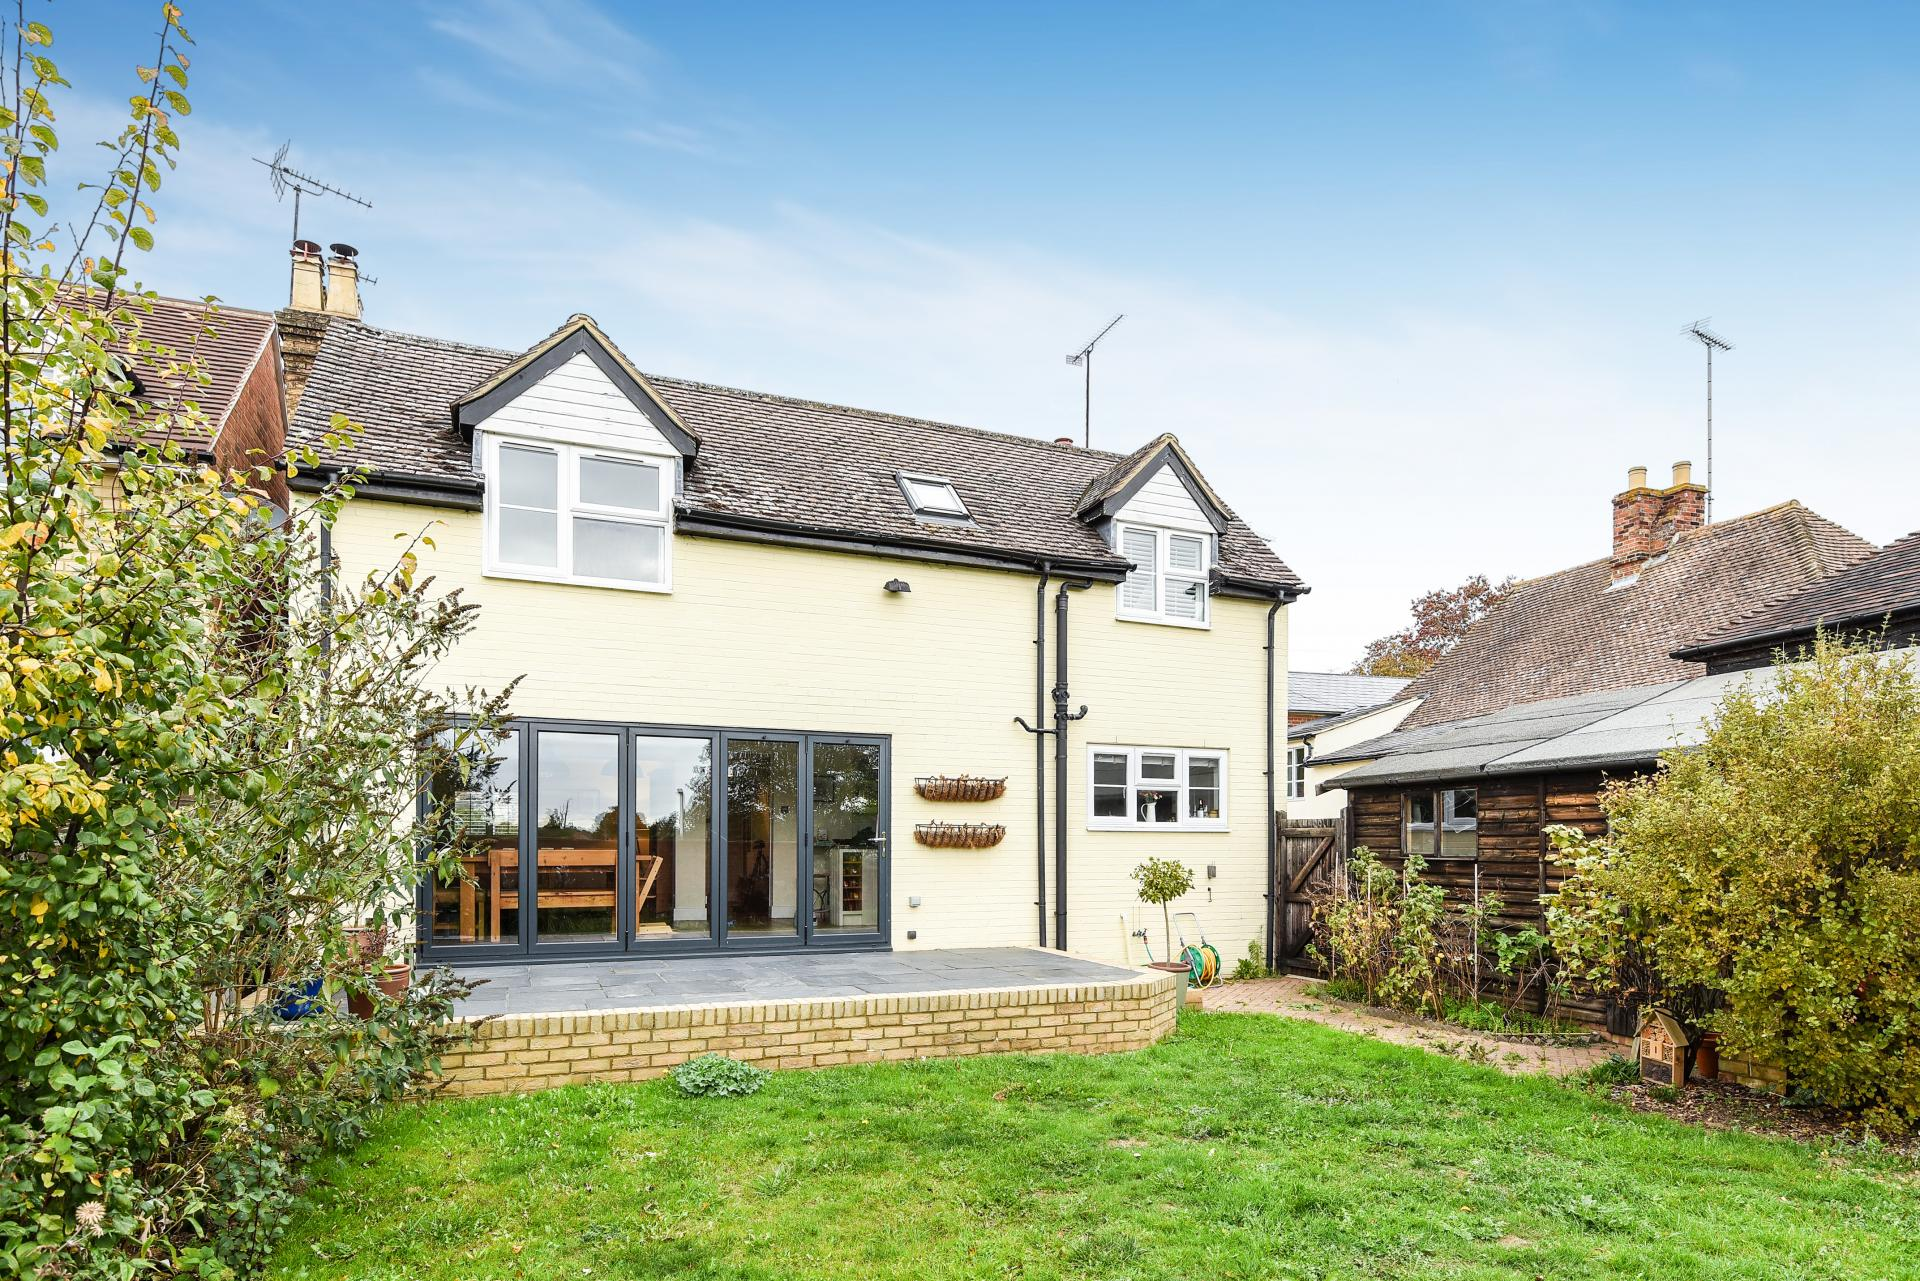 3 Bedroom House For Sale In Clophill